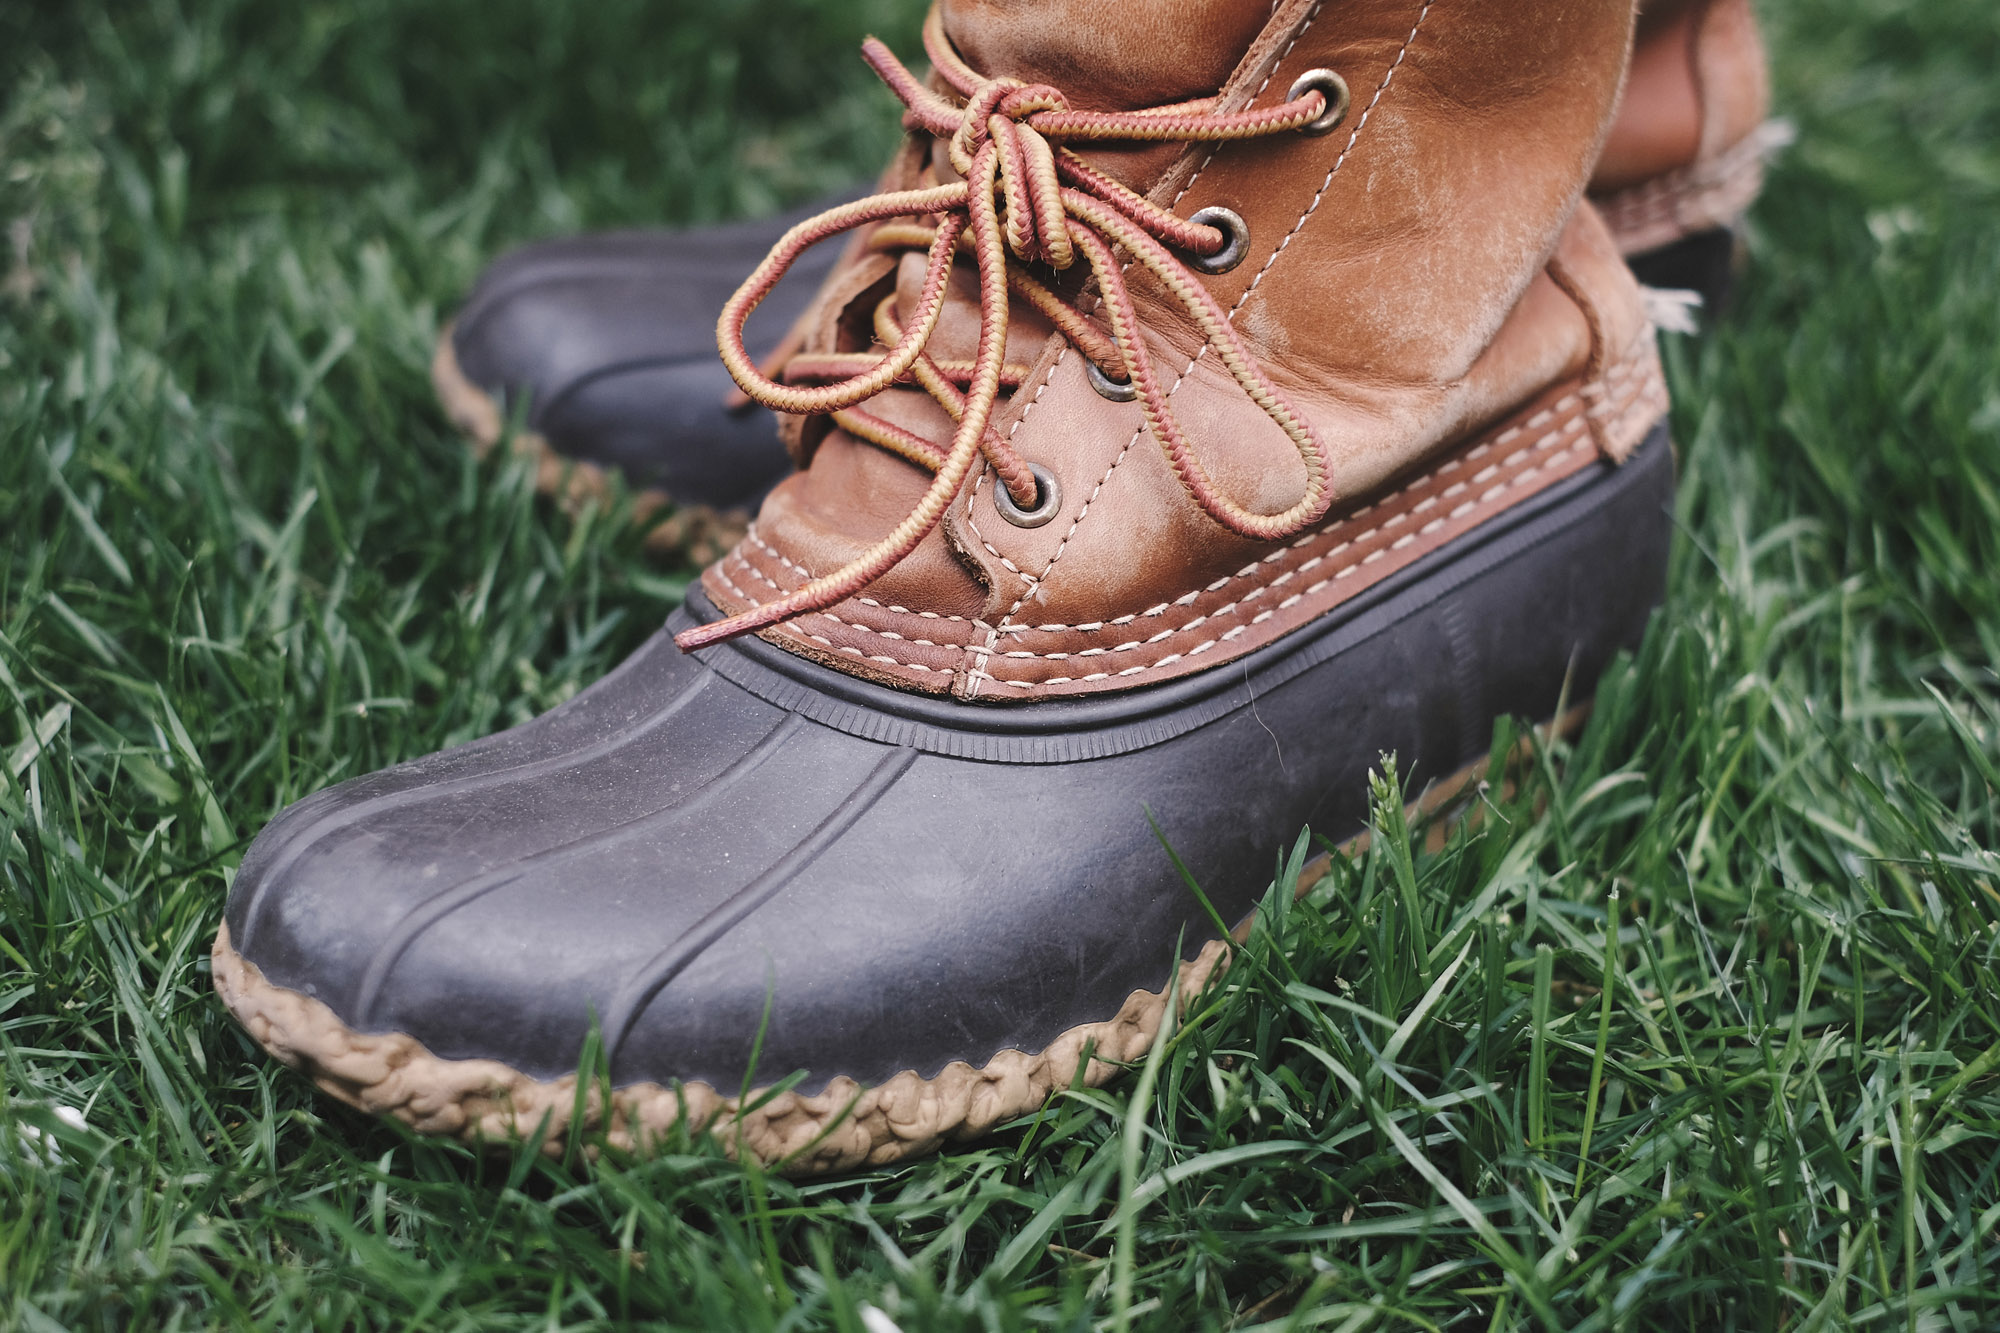 Of course, bring your Bean boots.